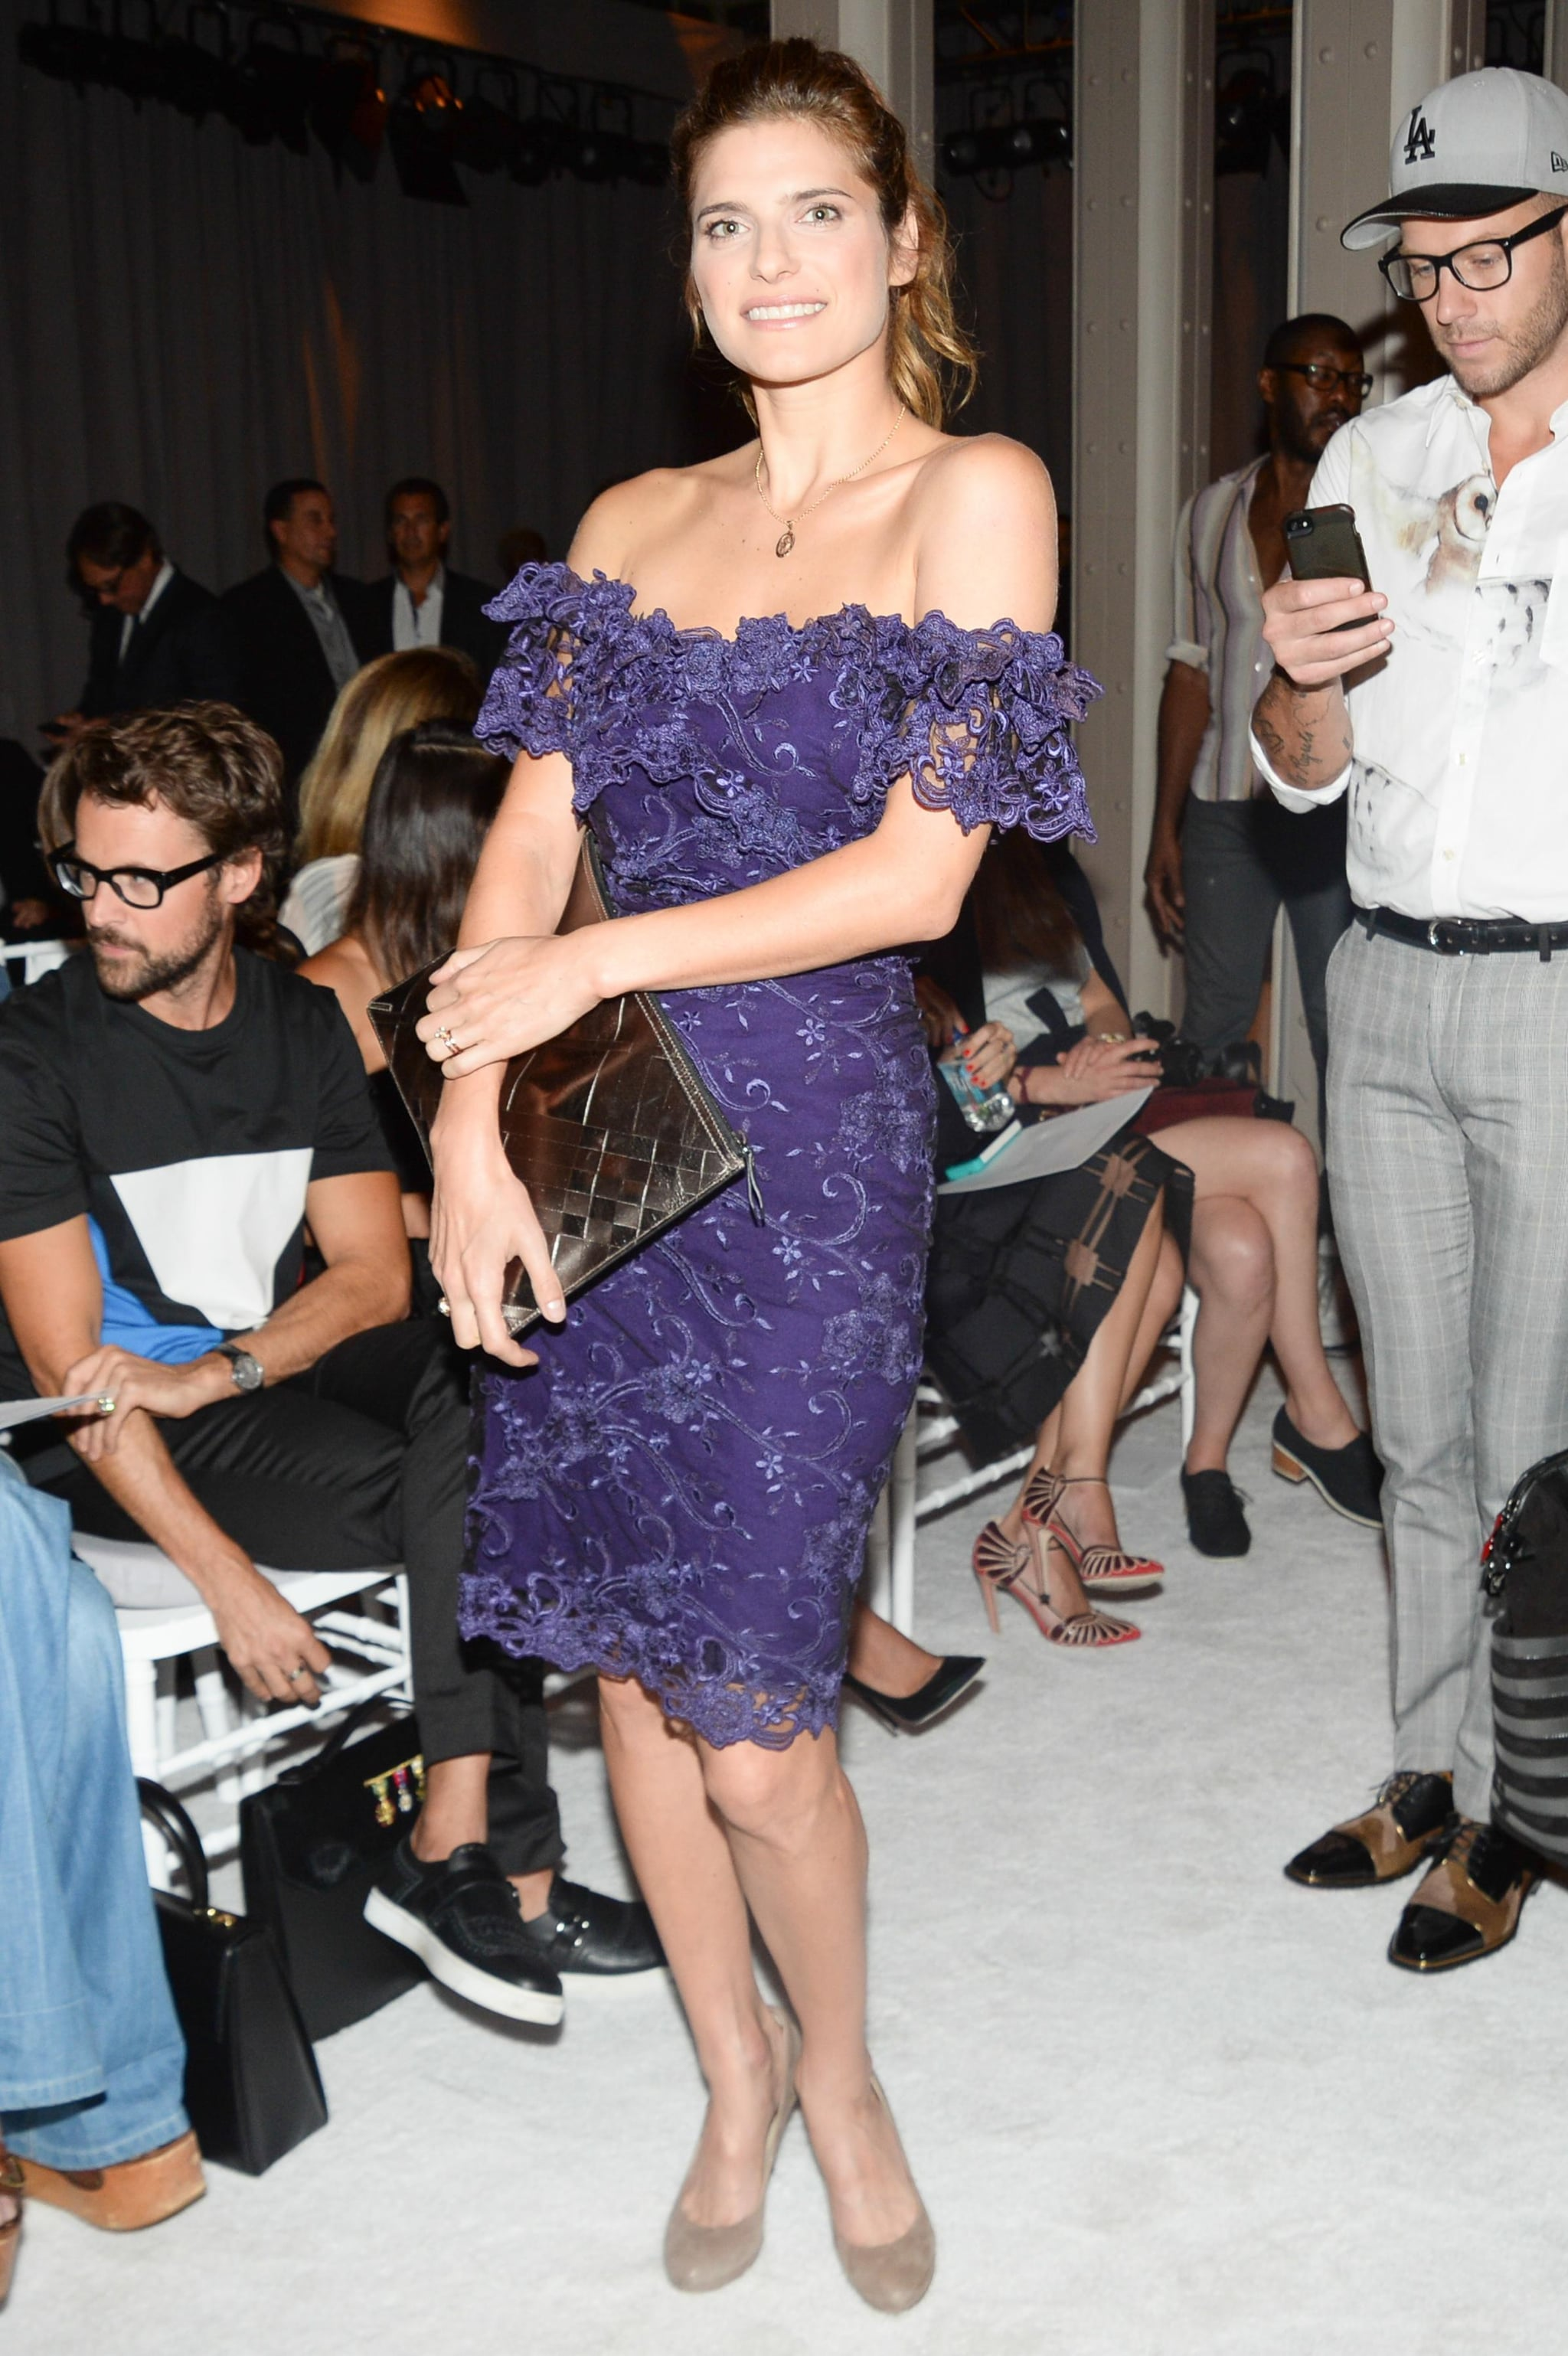 Lake Bell put her shoulders on display in a purple, textured, off-the-shoulder Marchesa dress at the Spring 2014 show.